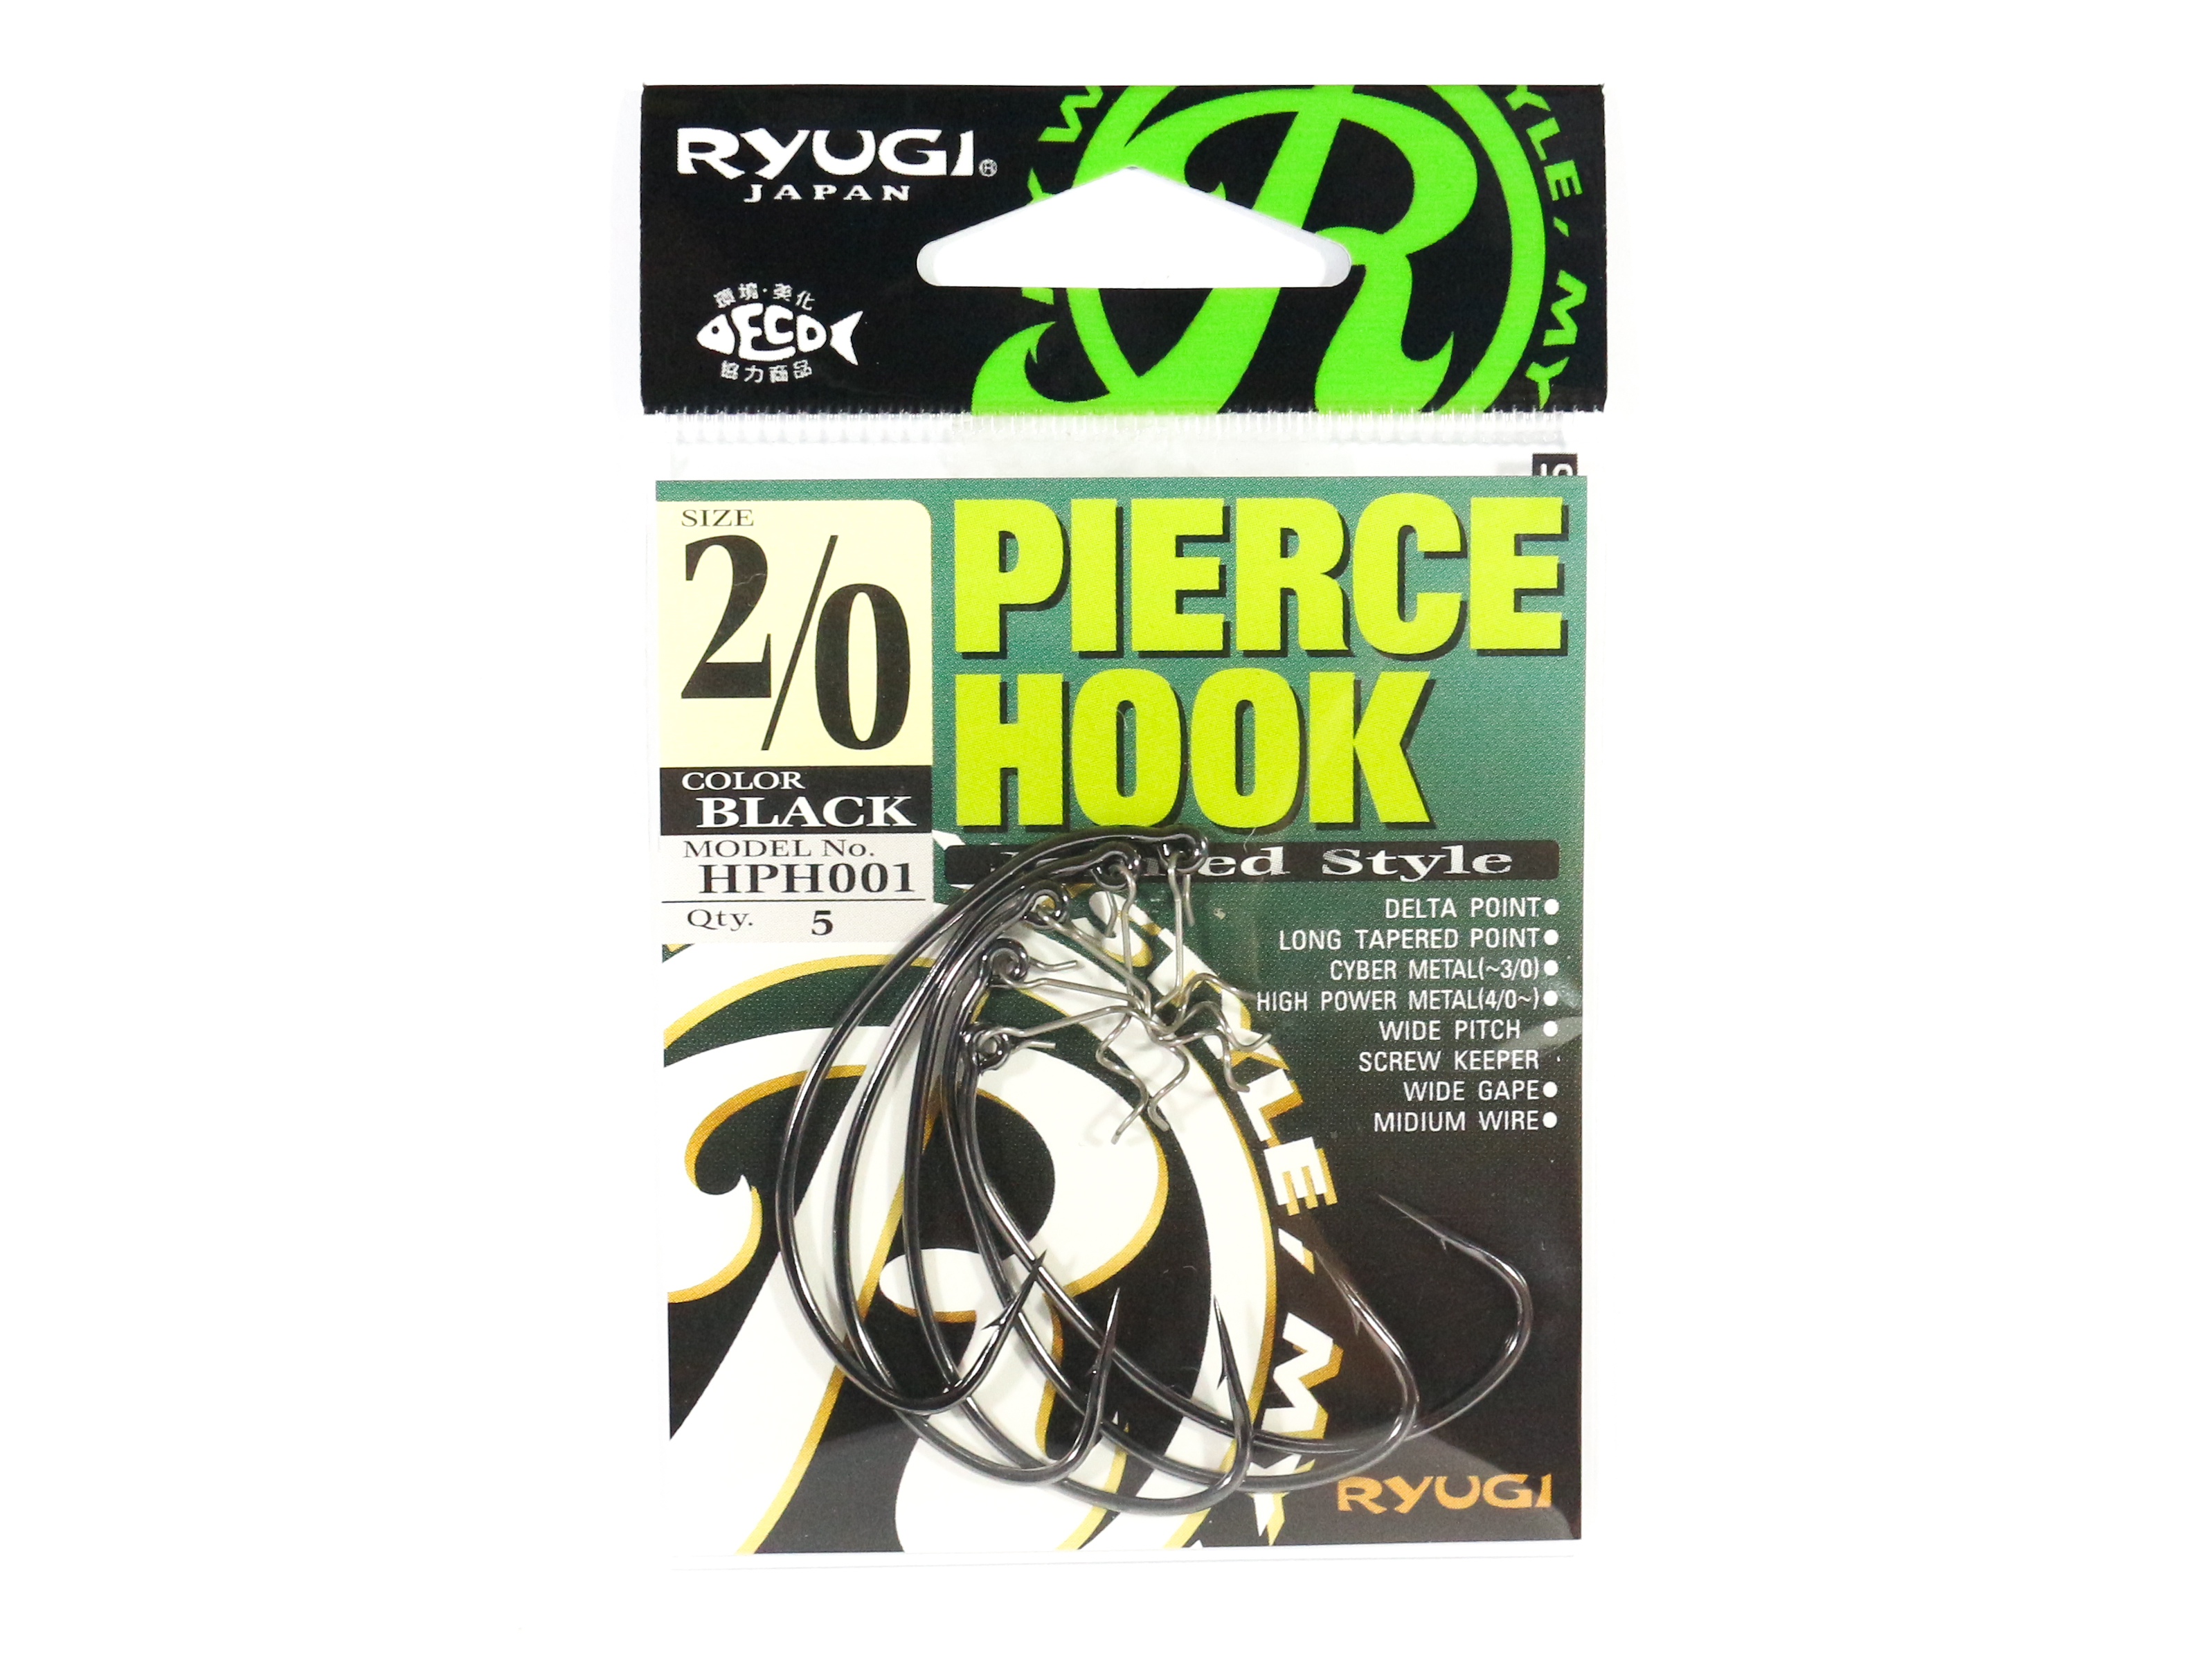 Ryugi HPH001 Pierce Hook Wide Gap Screw Keeper Size 2/0 (0584)